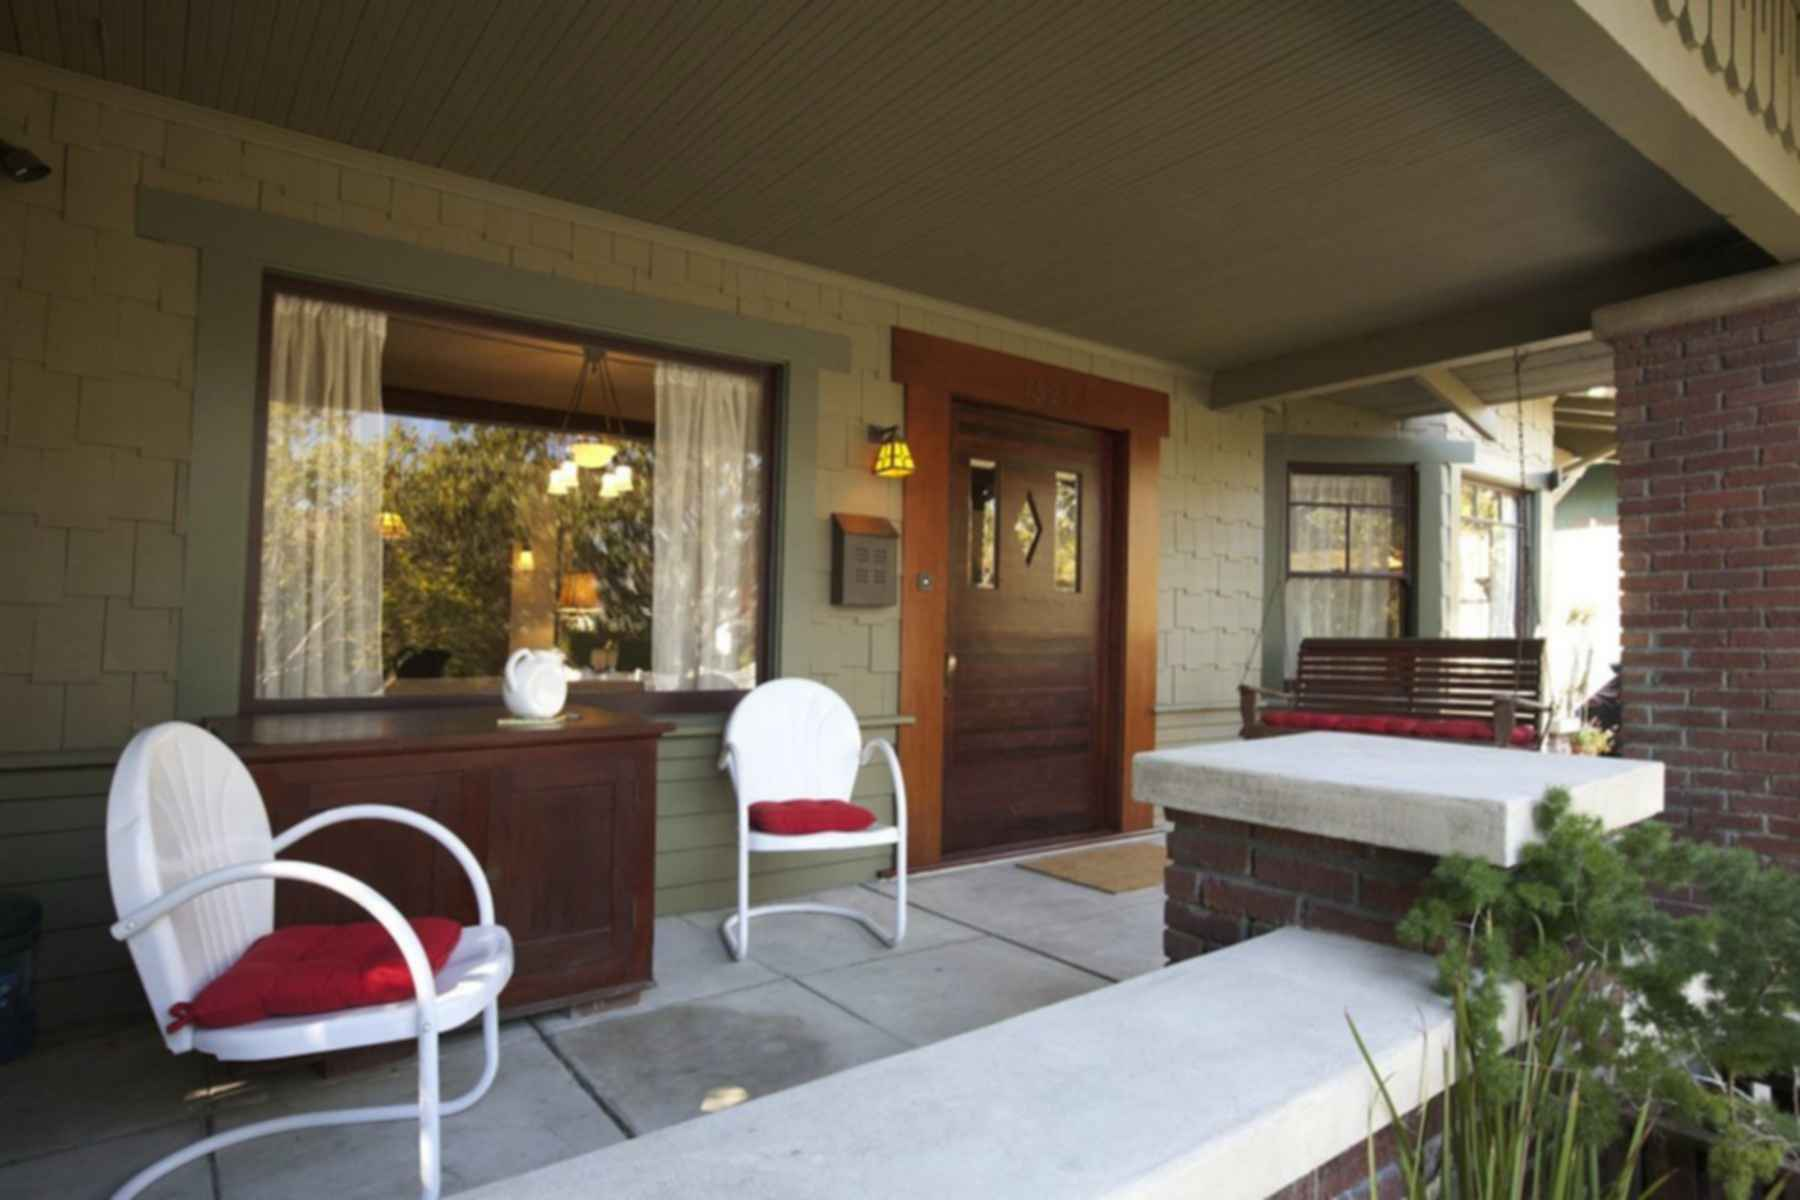 Airplane Bungalow - Outdoor Area/Entrance